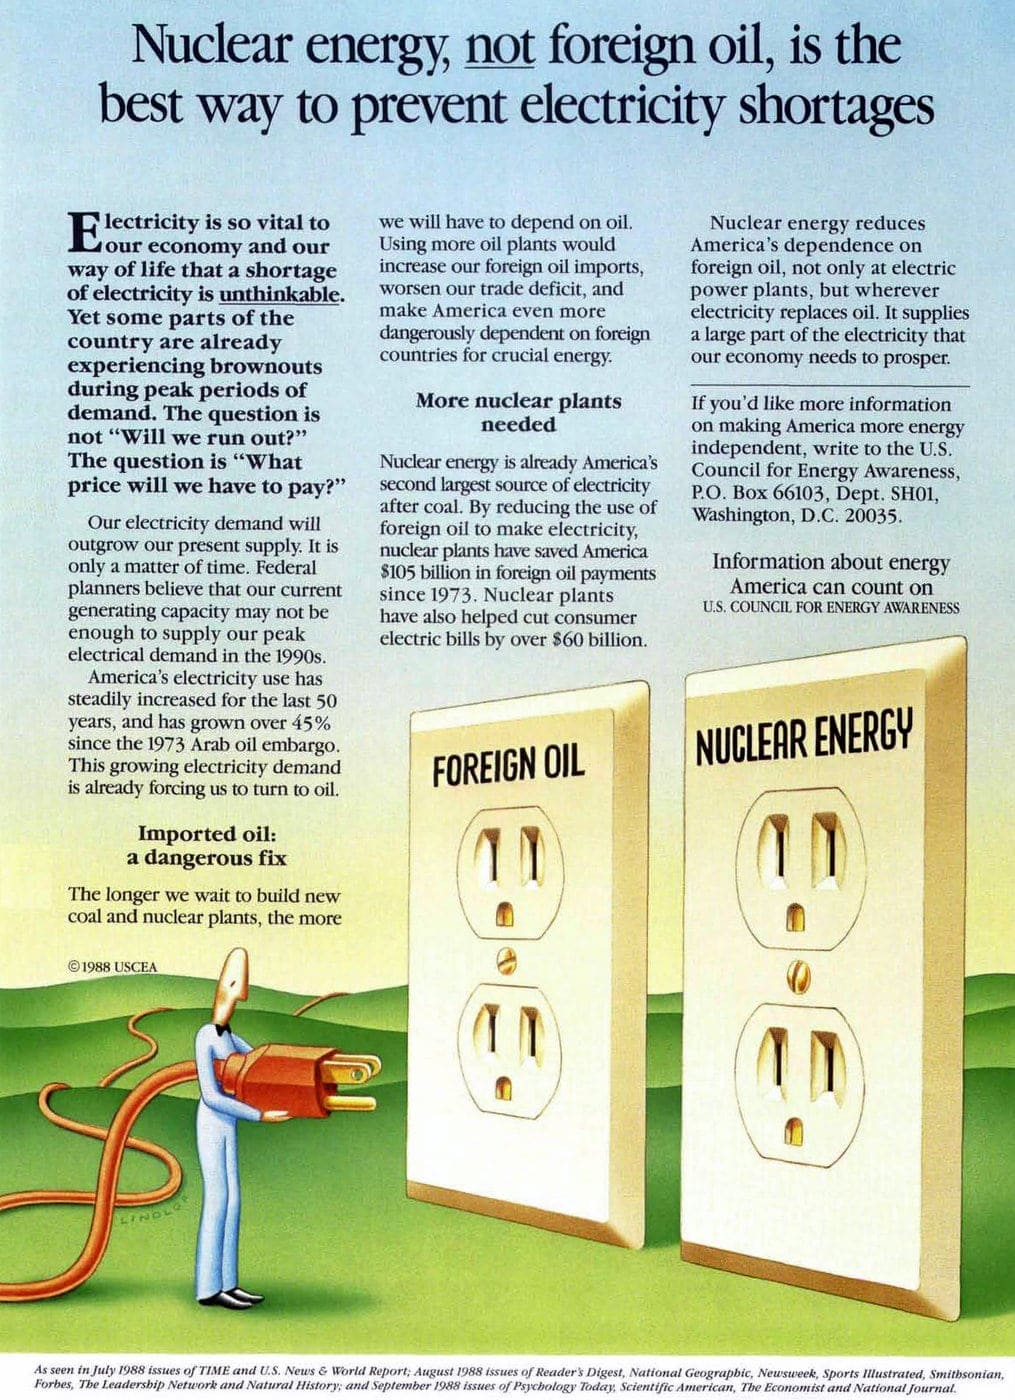 1980s Pro-nuclear Council for Energy Awareness campaign (1)